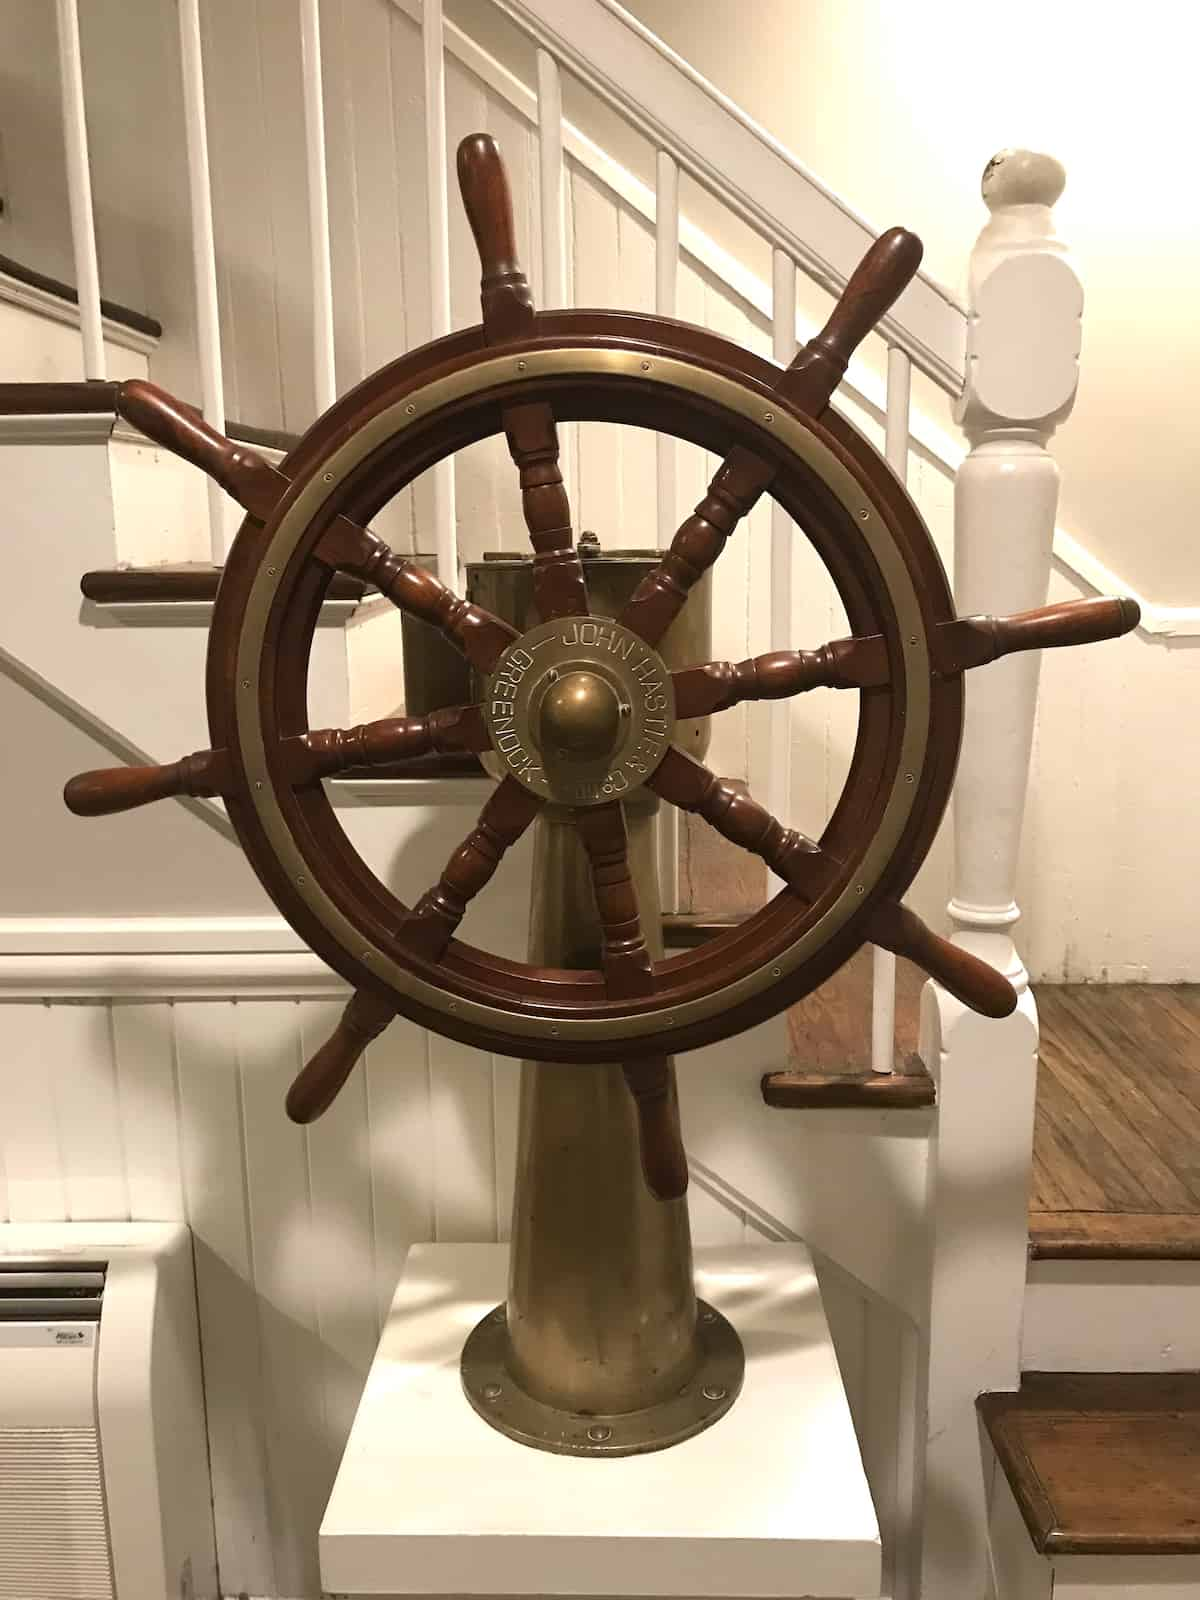 Antique helm or steering wheel from ship.